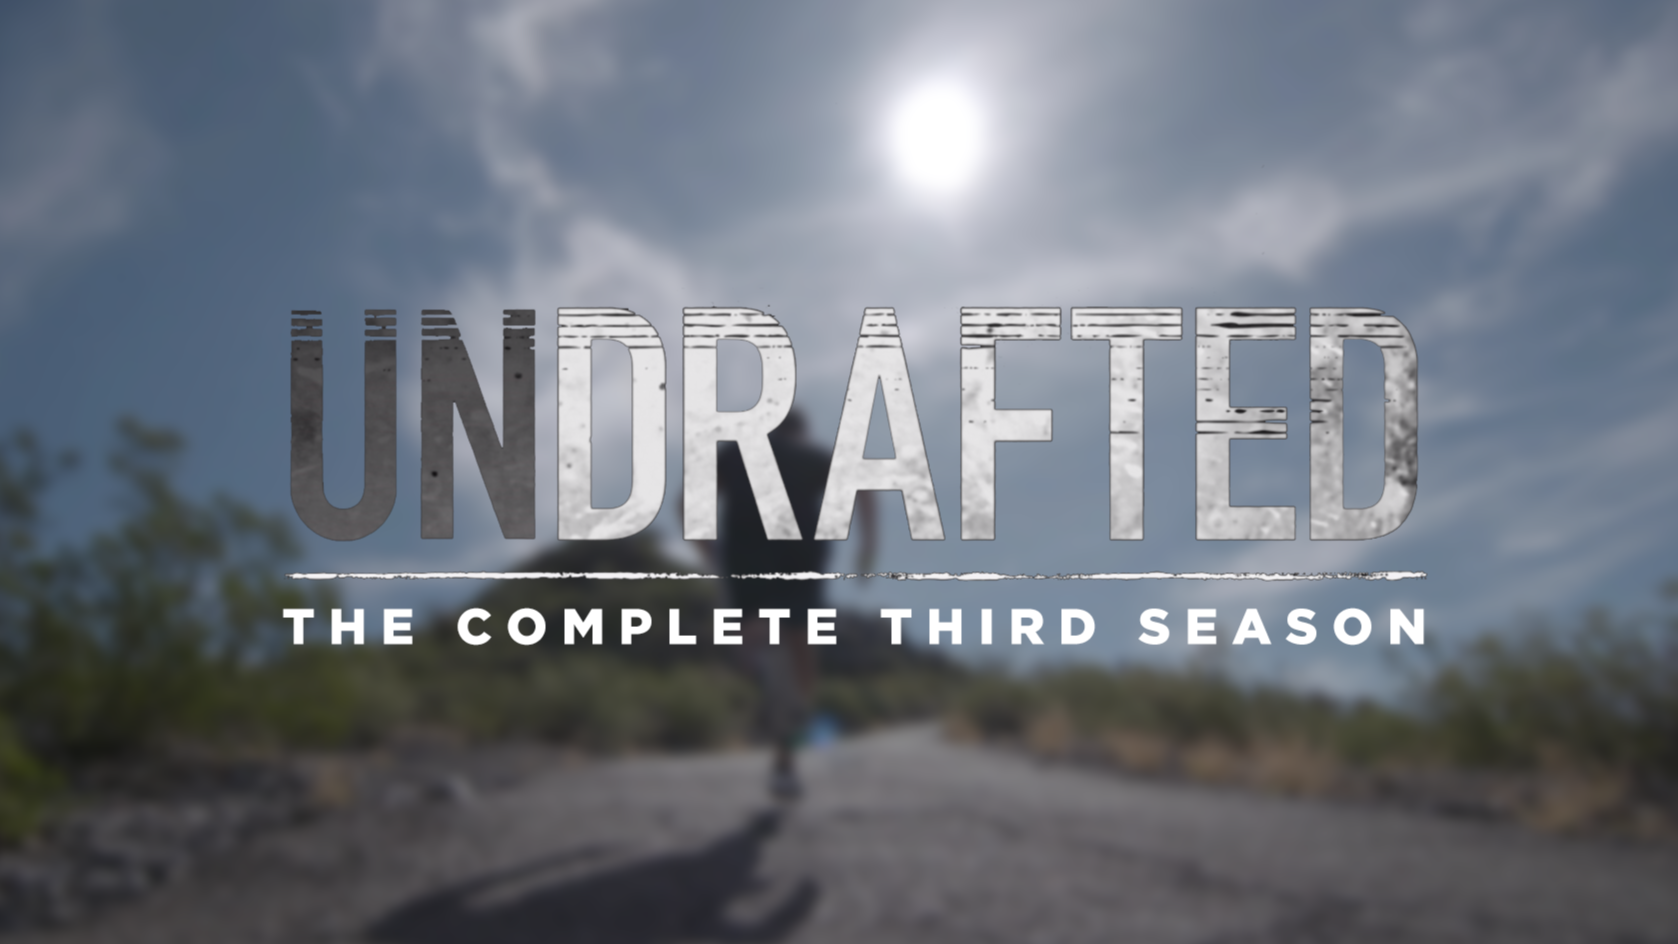 UNDRAFTEDS1(COLOR)_edited.png